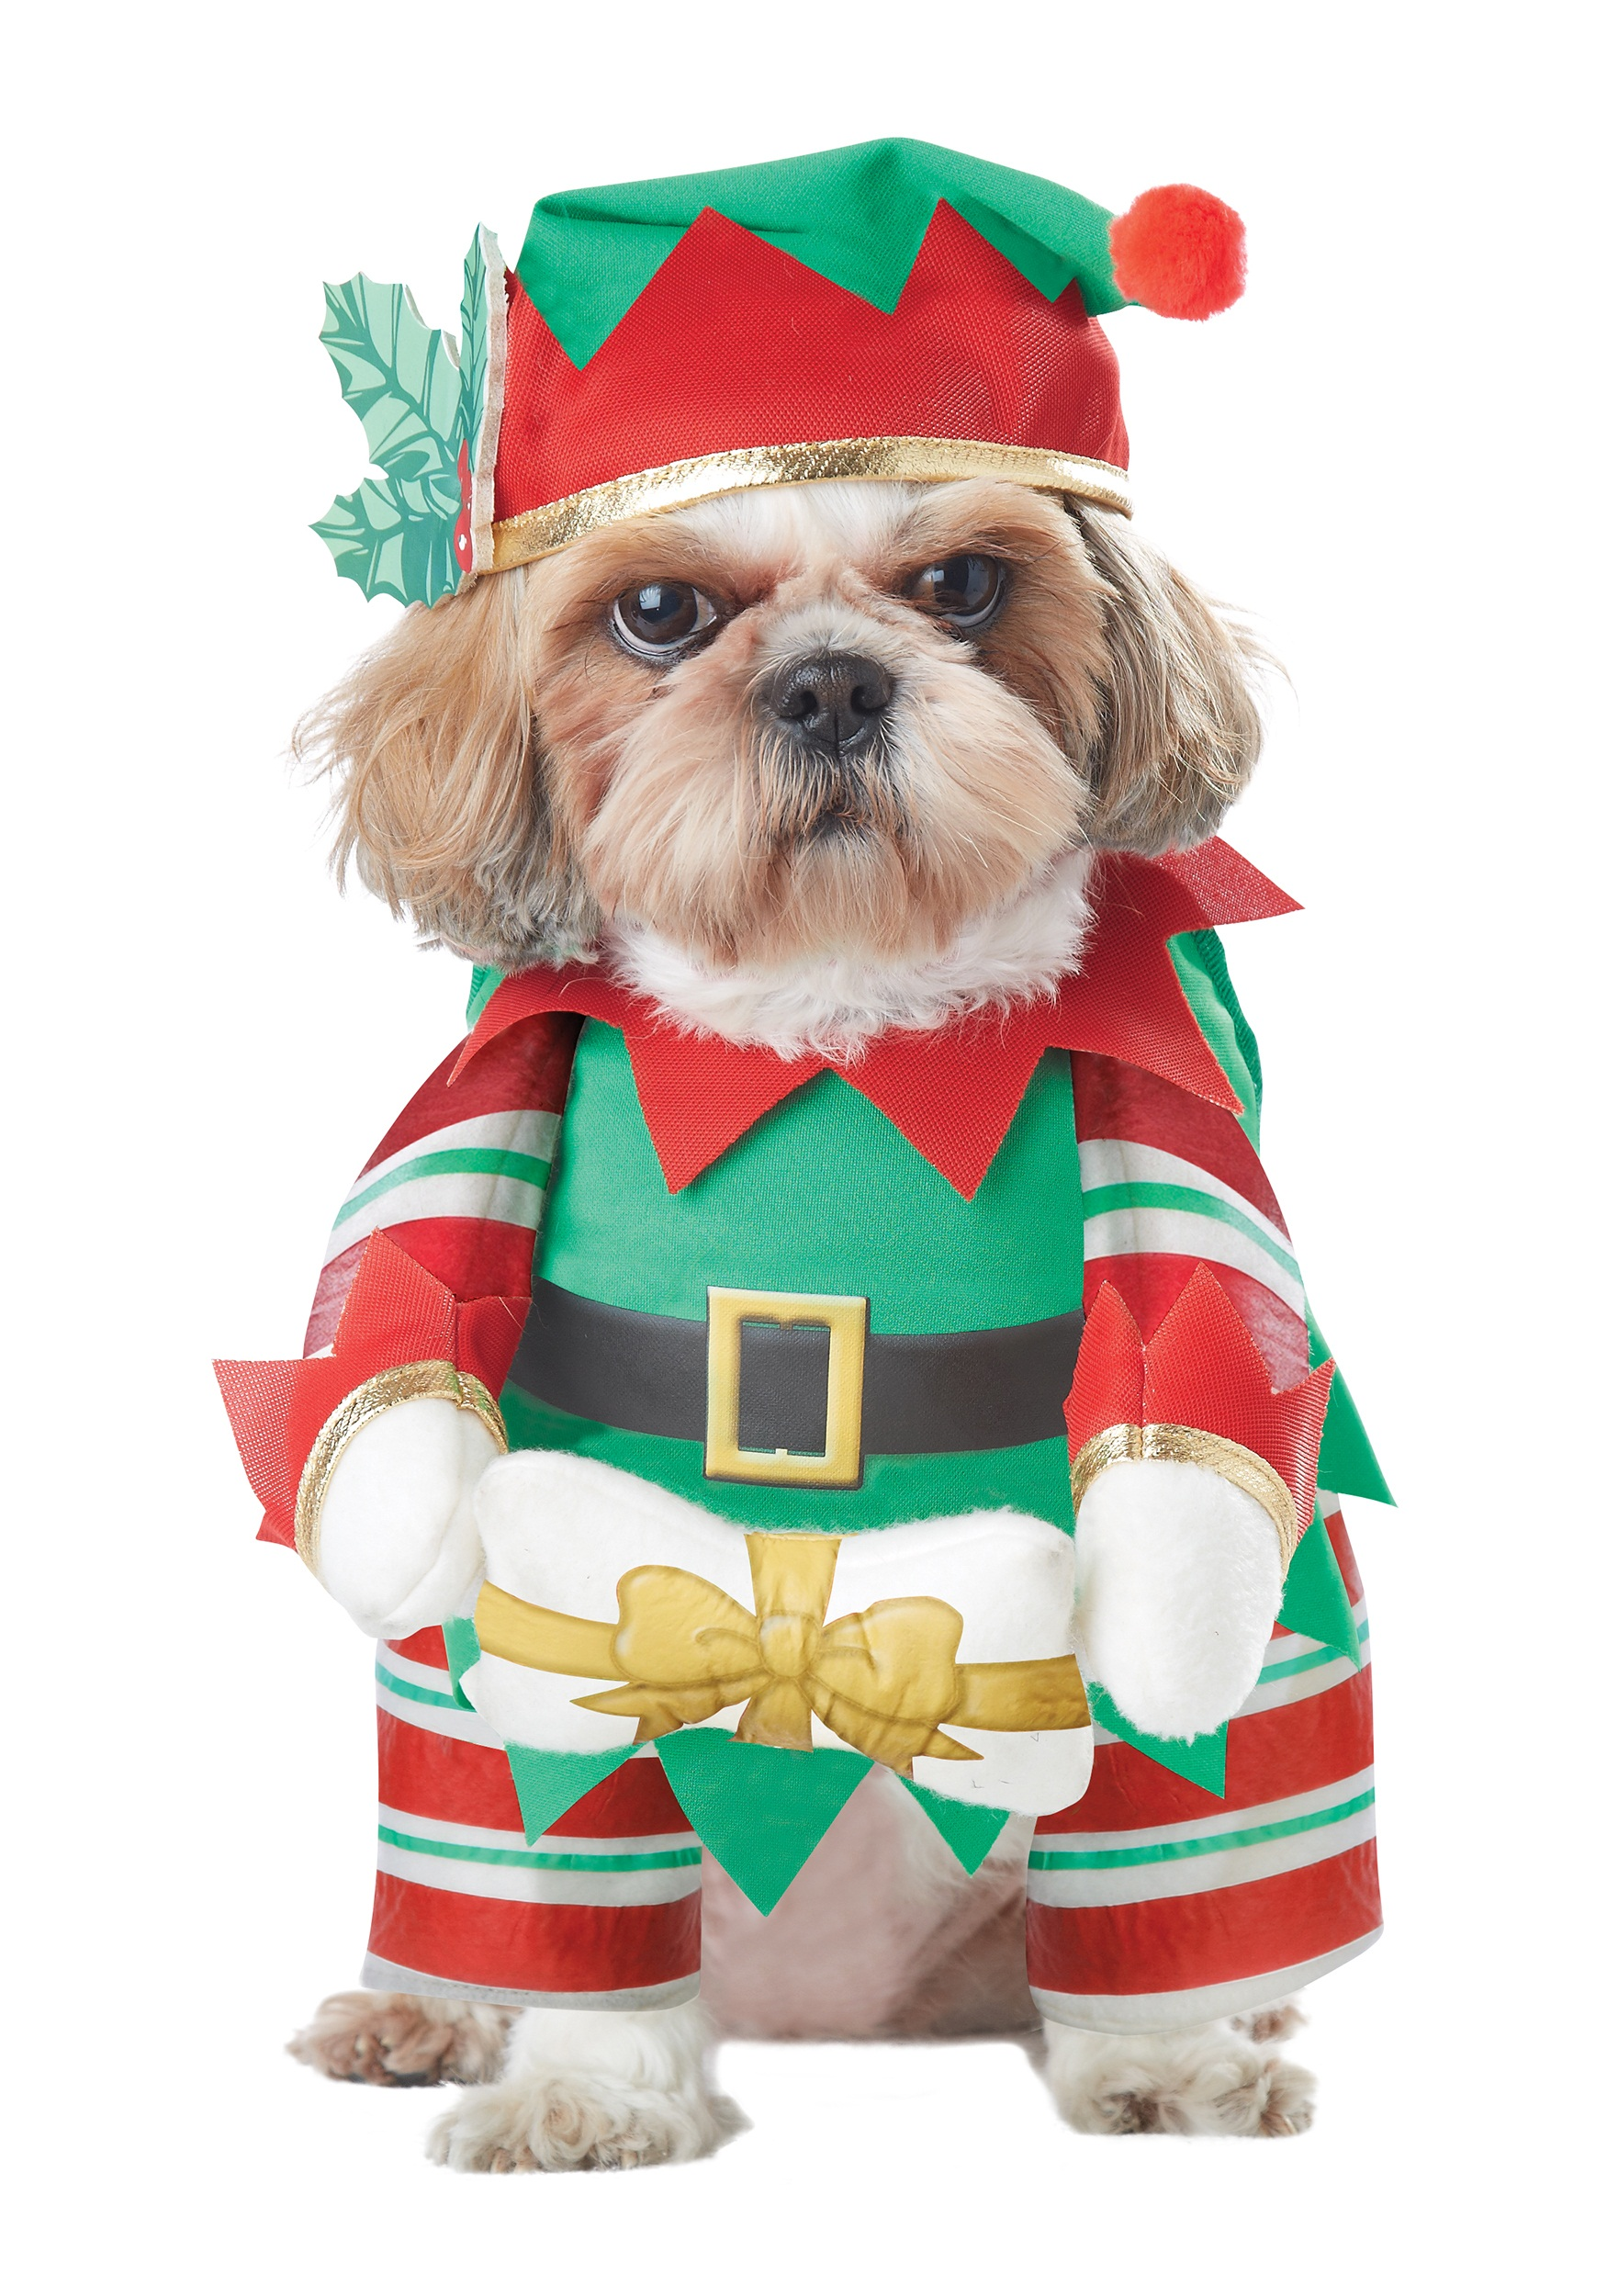 Elf Dog Costumes photo - 1